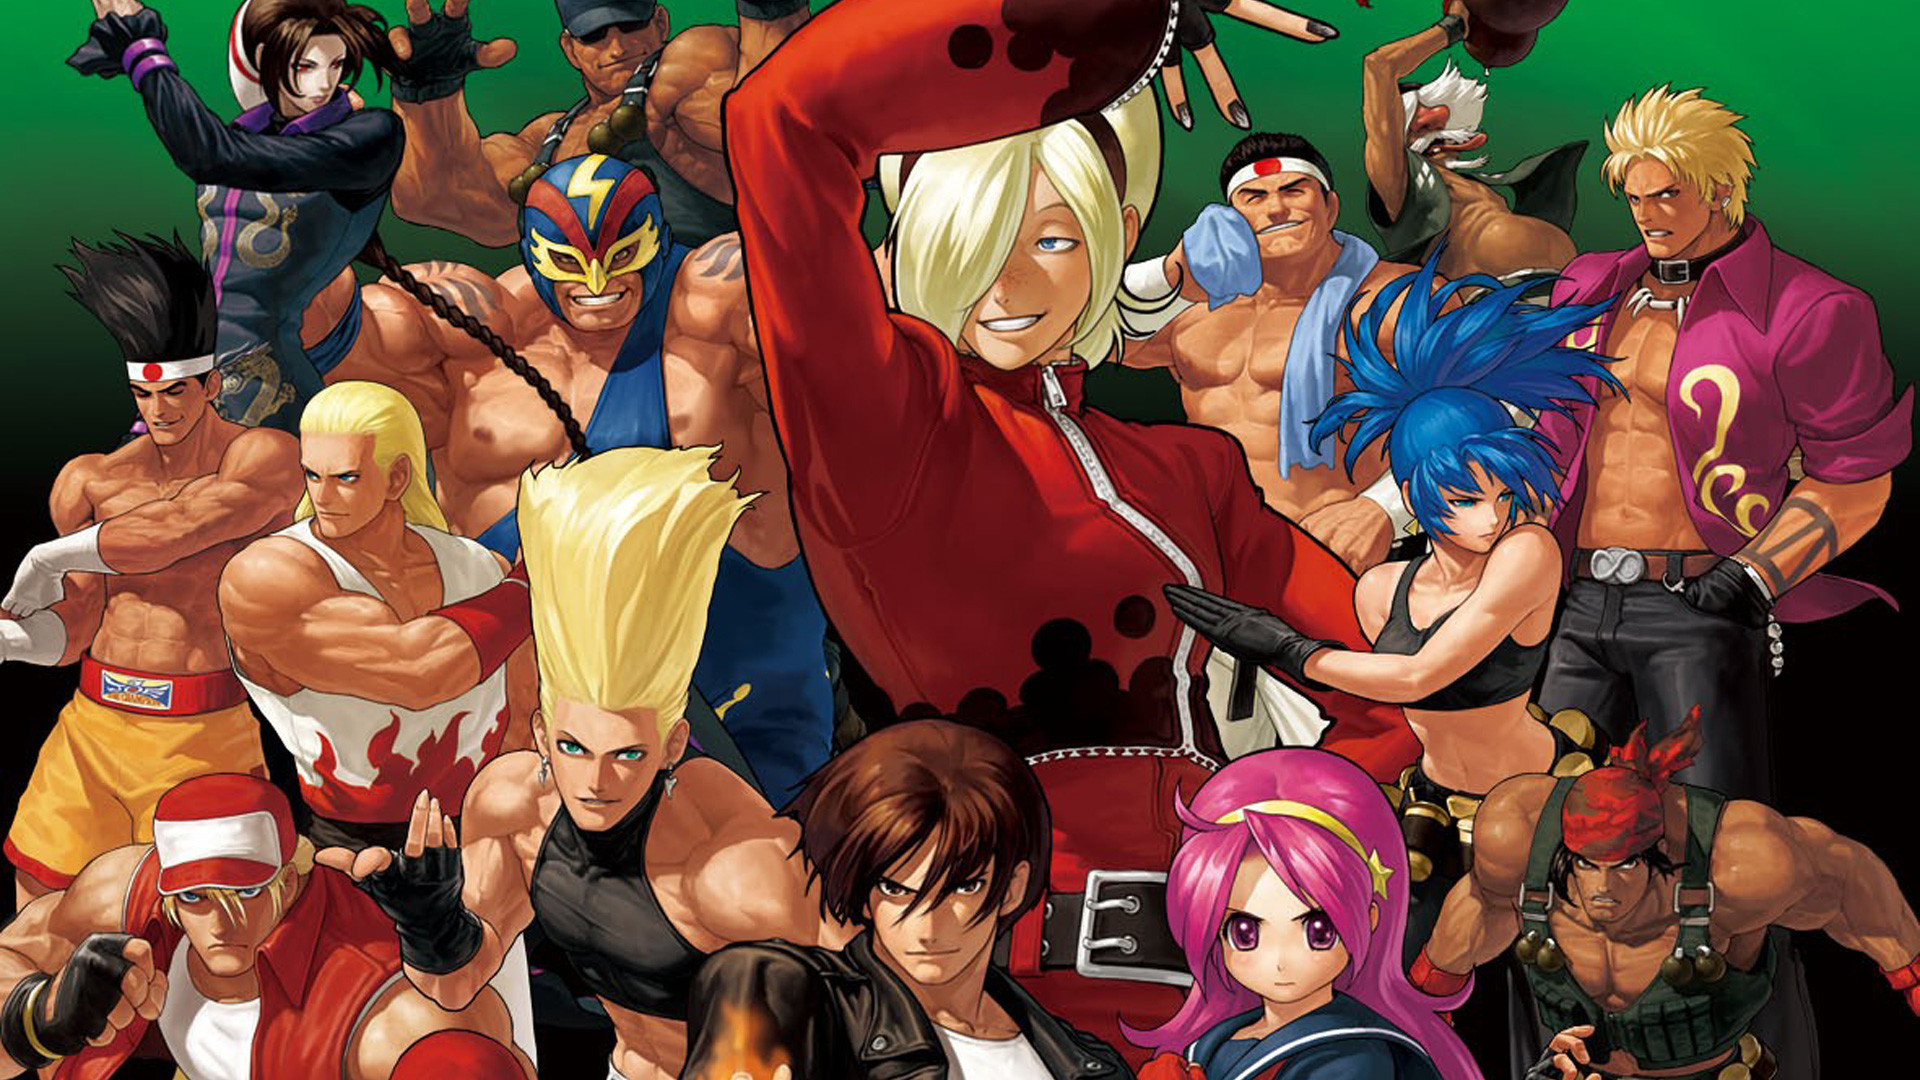 Download King Of Fighters Xii Xbox 360 1410802 Hd